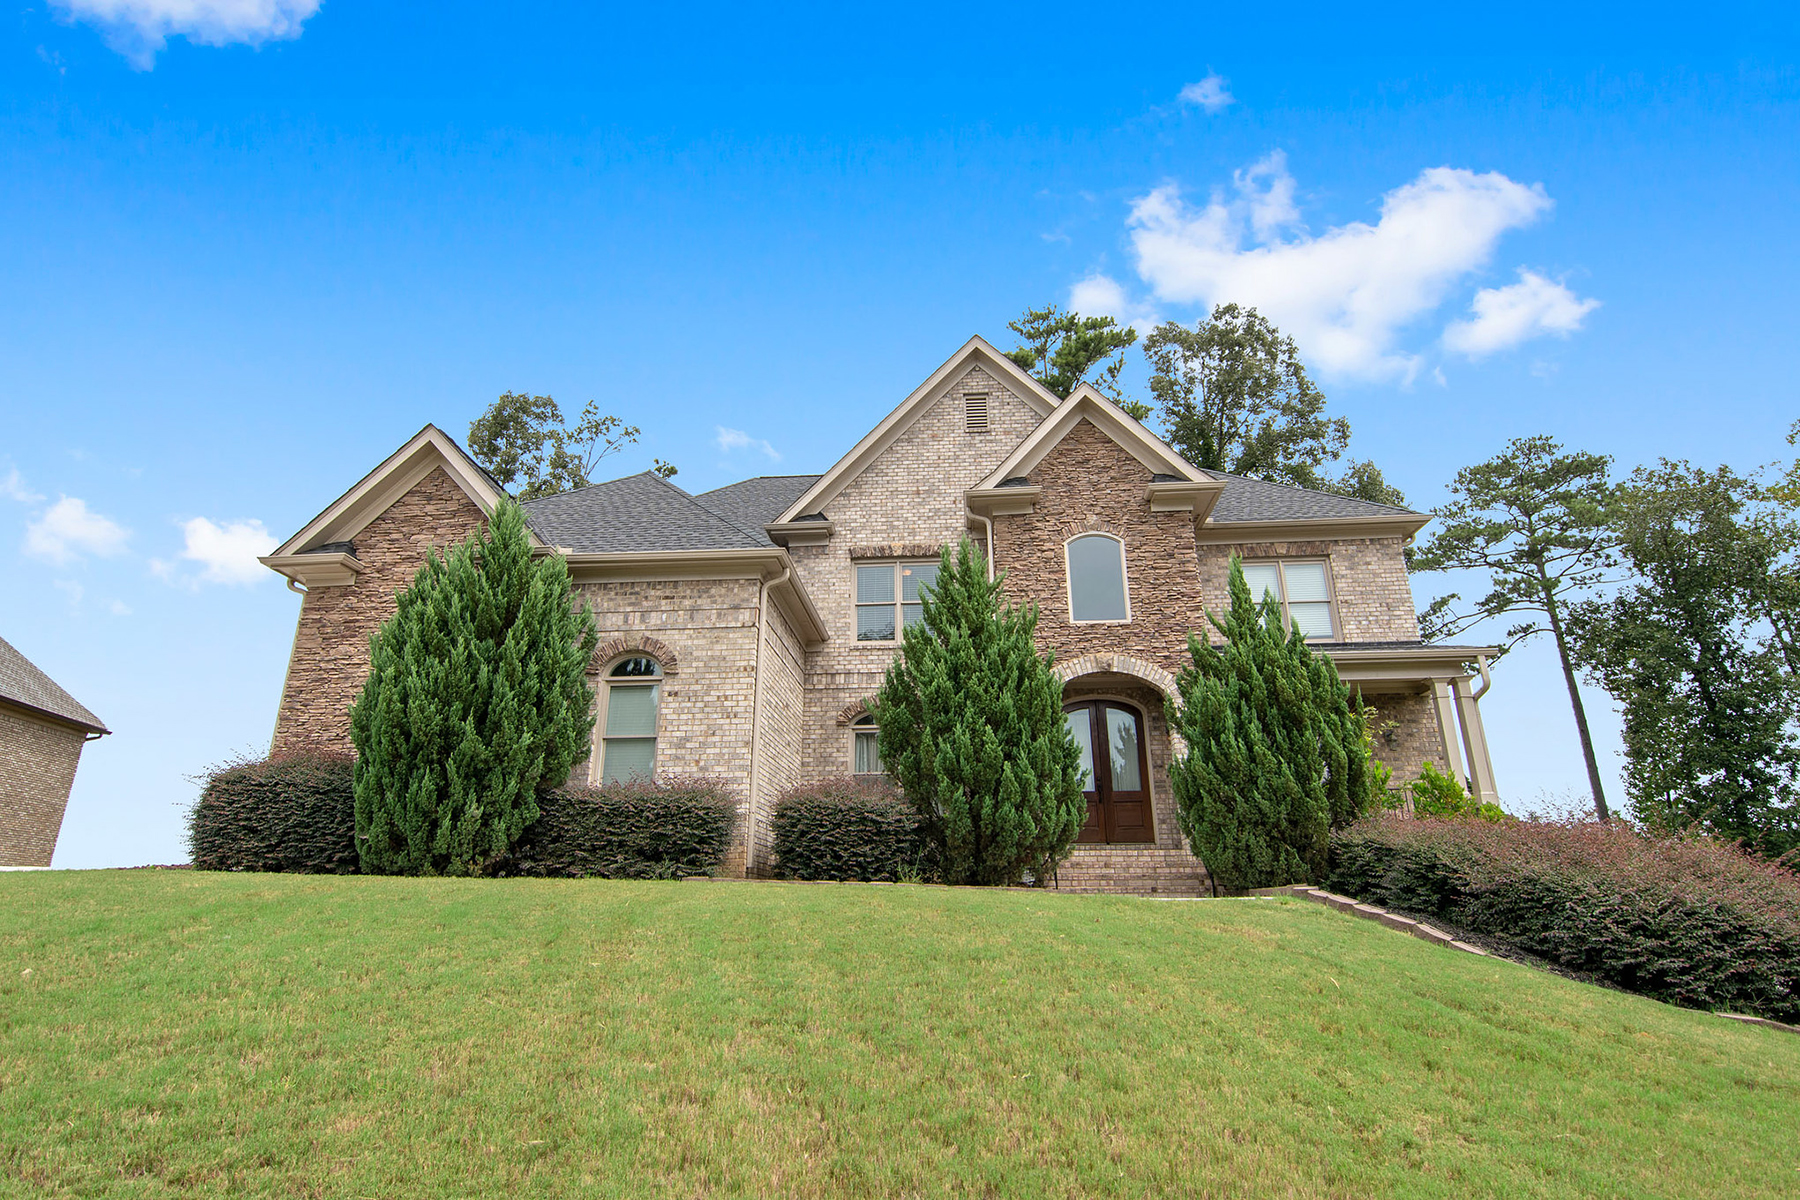 Single Family Home for Sale at Executive Brick Home with Basement, Close to Downtown And Hartsfield-Jackson 5145 Halcyon Dr Atlanta, Georgia 30349 United States